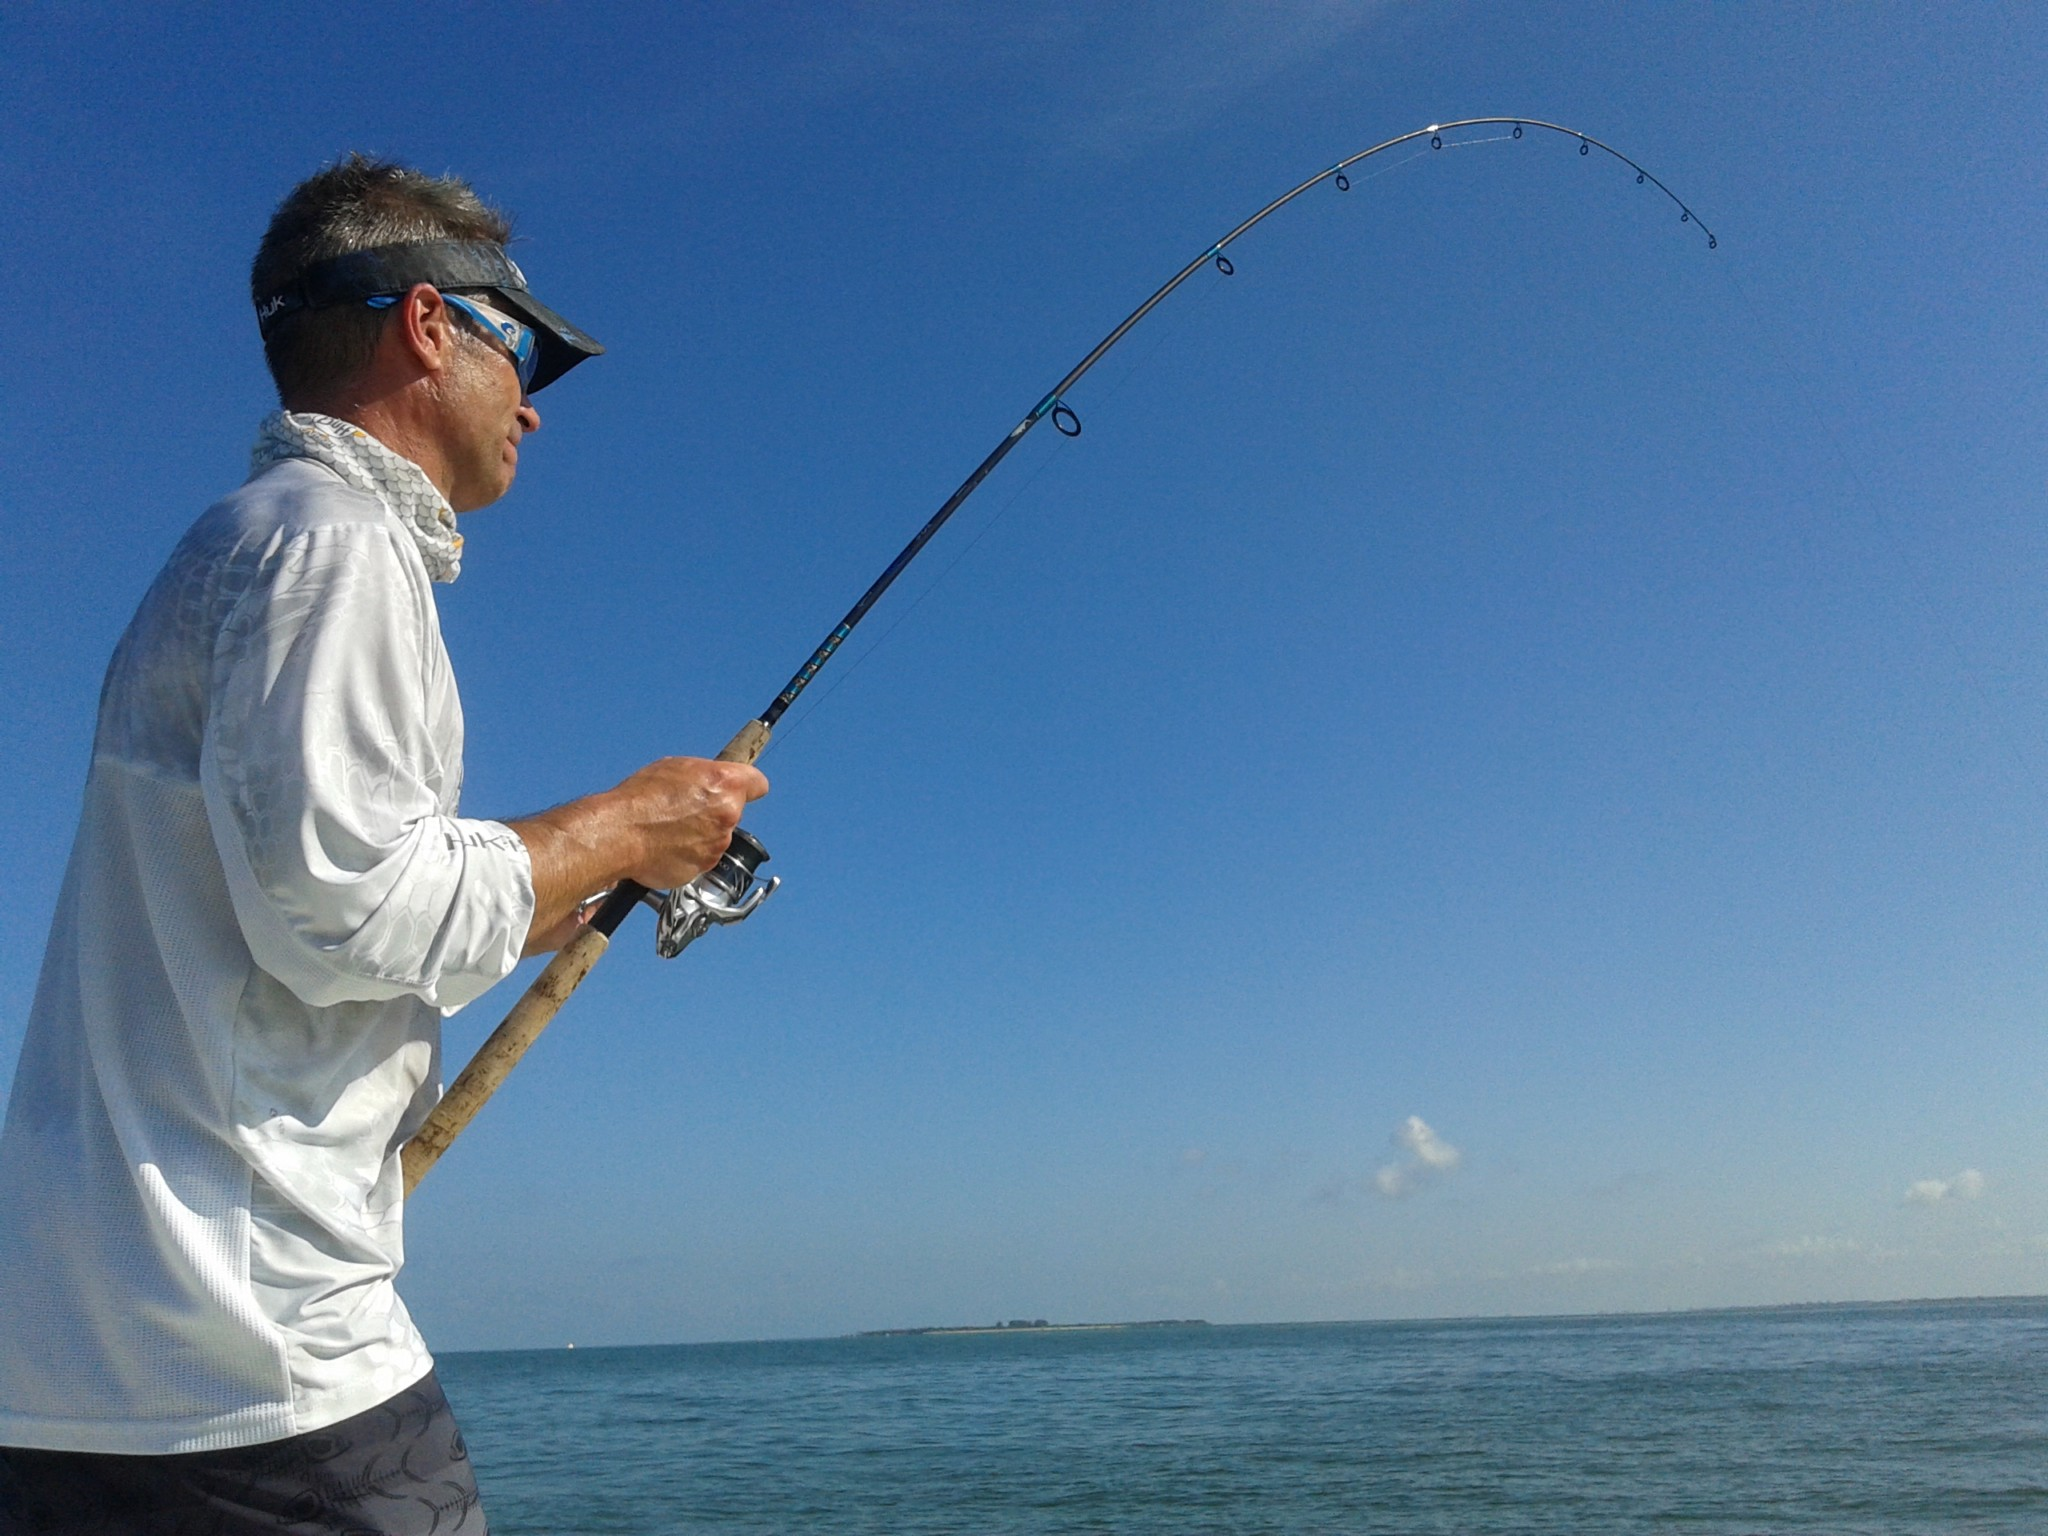 Tampa fishing tarpon guide tampa fishing charters for Fishing charters tampa